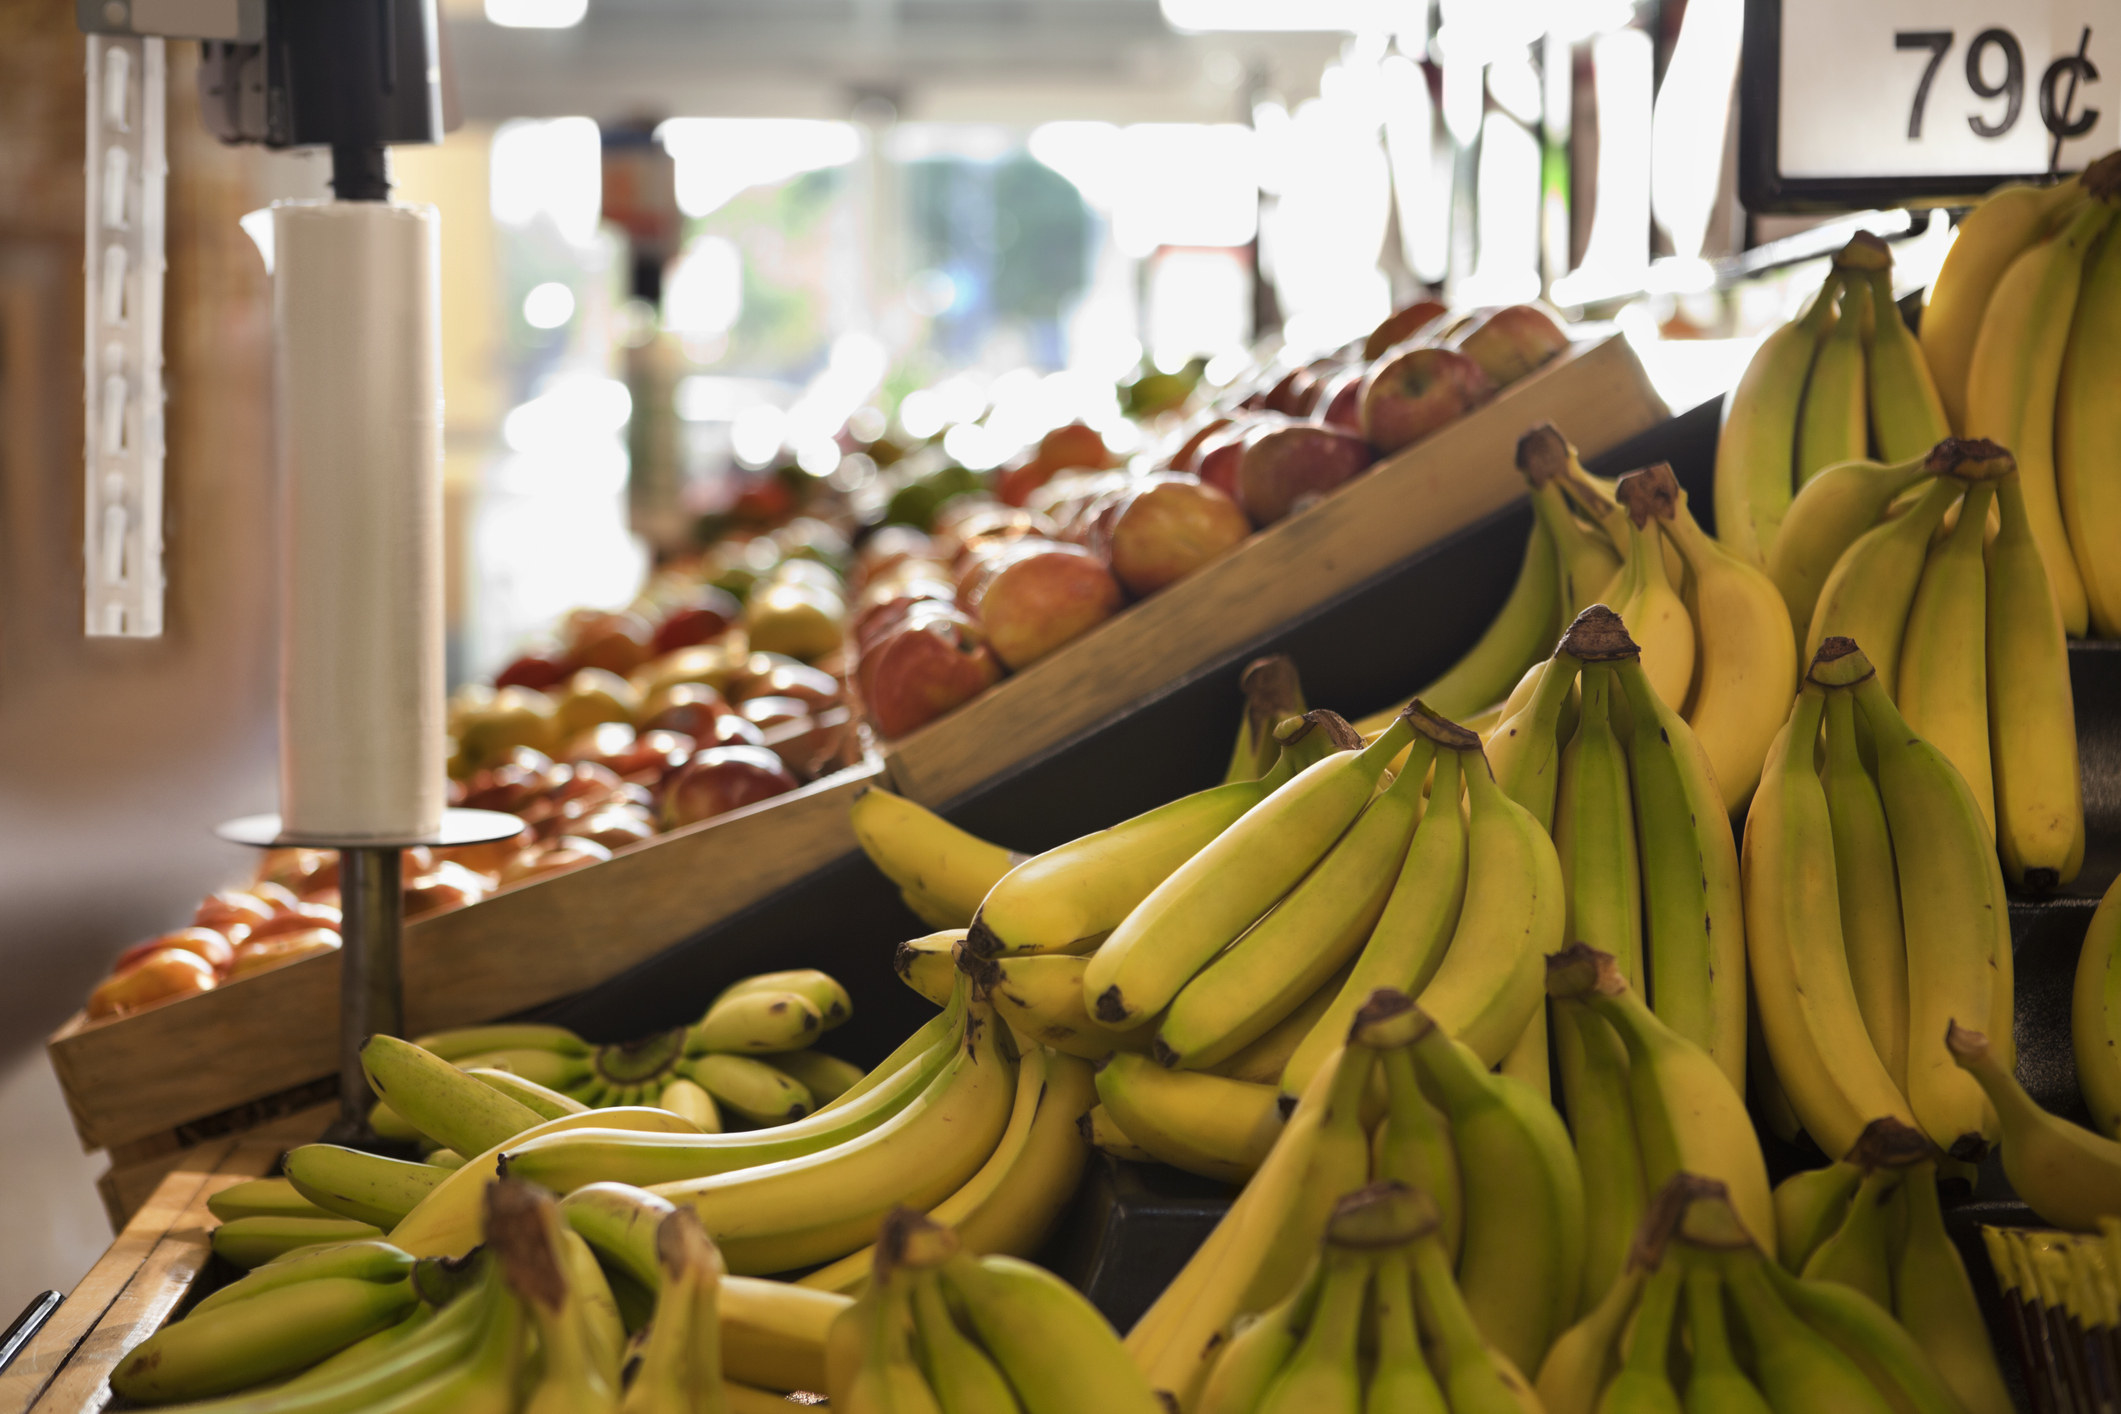 """The produce aisle in a grocery store with a bunch of bananas labeled """"79 cents"""""""